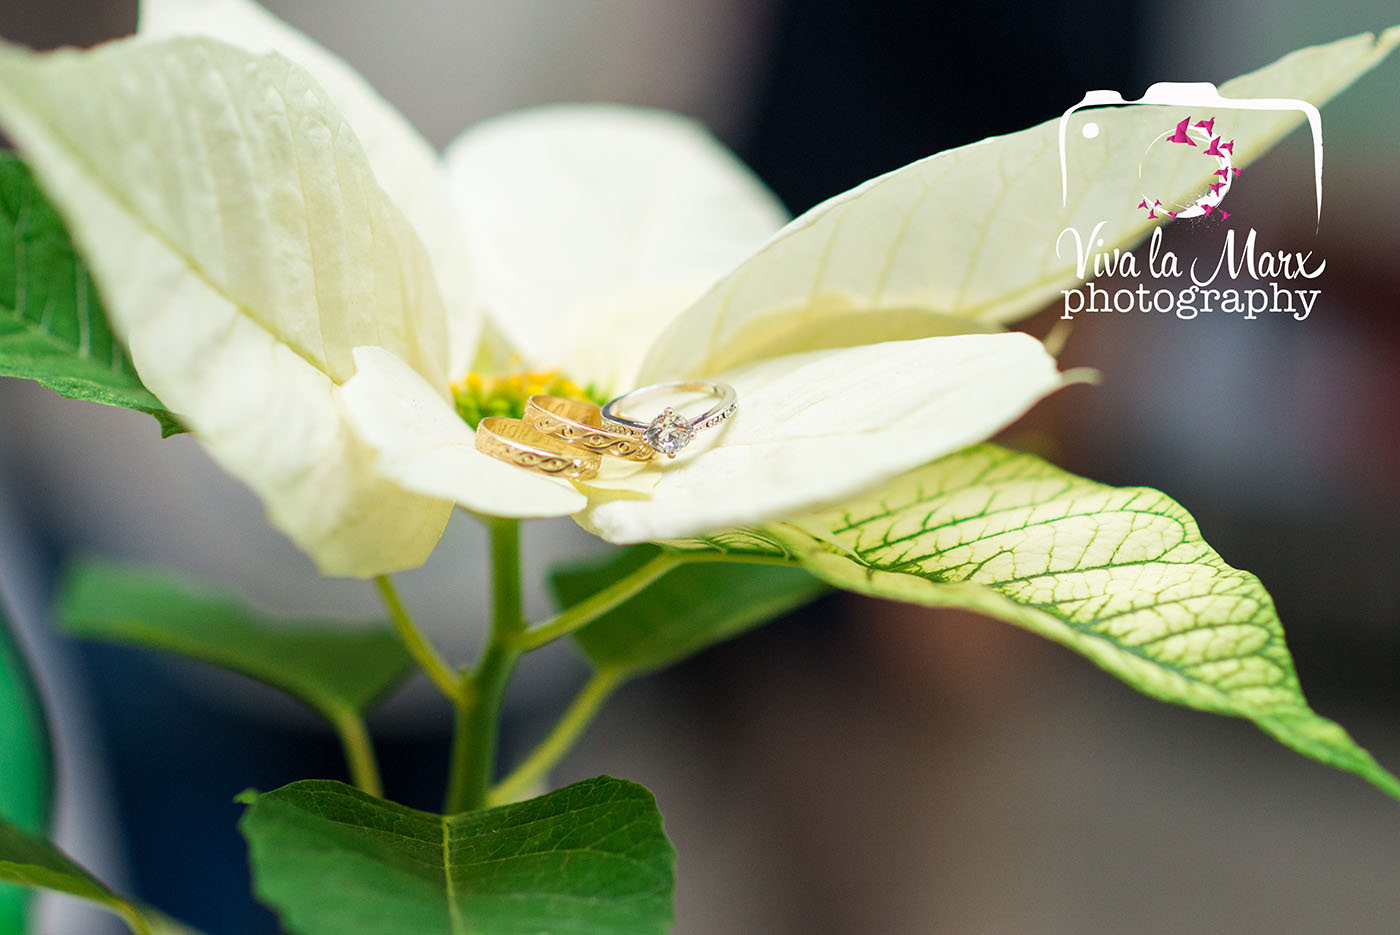 En la boda decembrina, no faltan las noches buenas. In this December Wedding, these white poinsettia flowers could not be left out, perfect to show off the wedding rings, for memories of all the details that went on for this wedding.